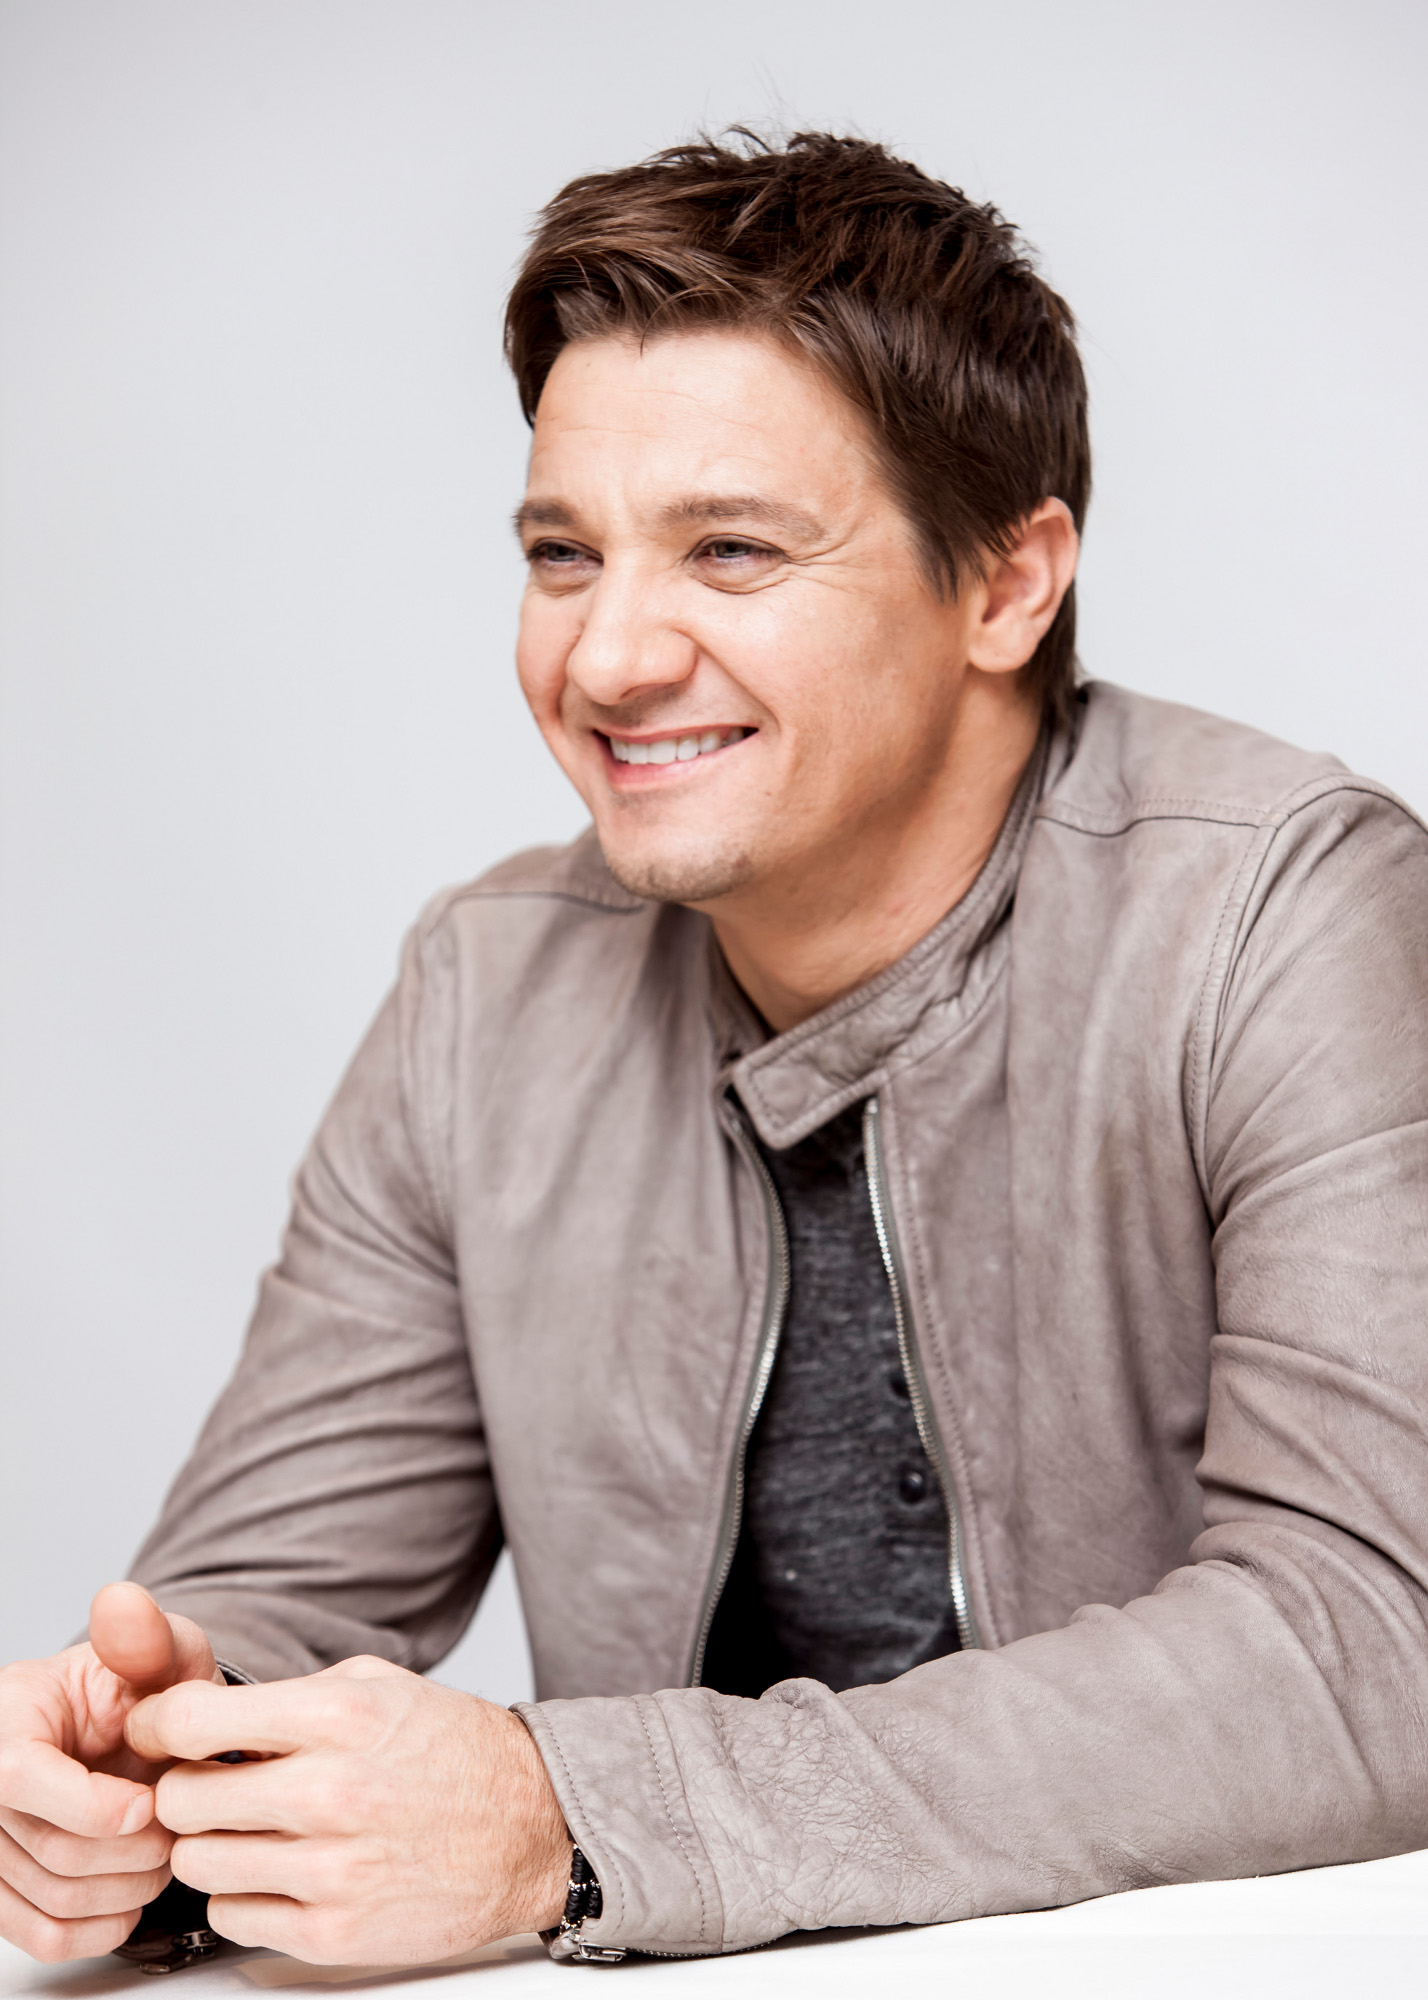 Jeremy-Renner-Jan-05-2013-Hansel-And-Gretel-Press-Conference-jeremy-renner-33411211-1428-2000.jpg